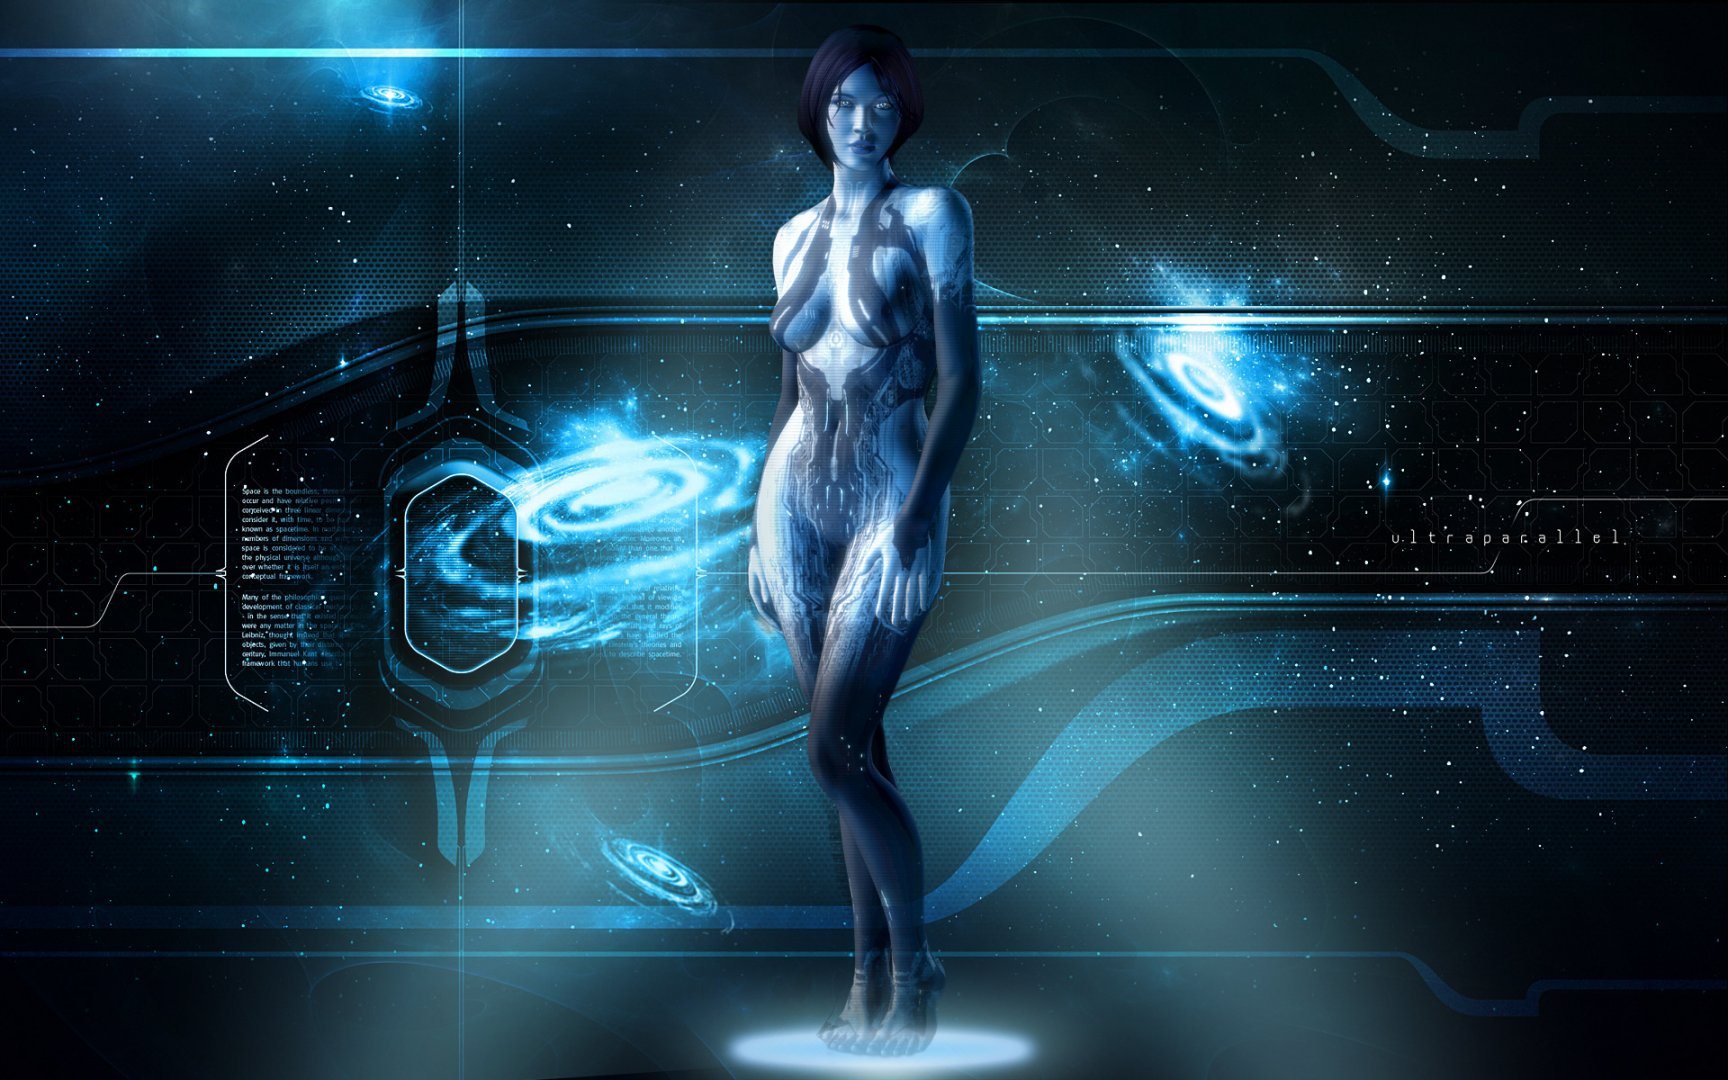 Cortana-Wallpaper-For-Laptop.jpg